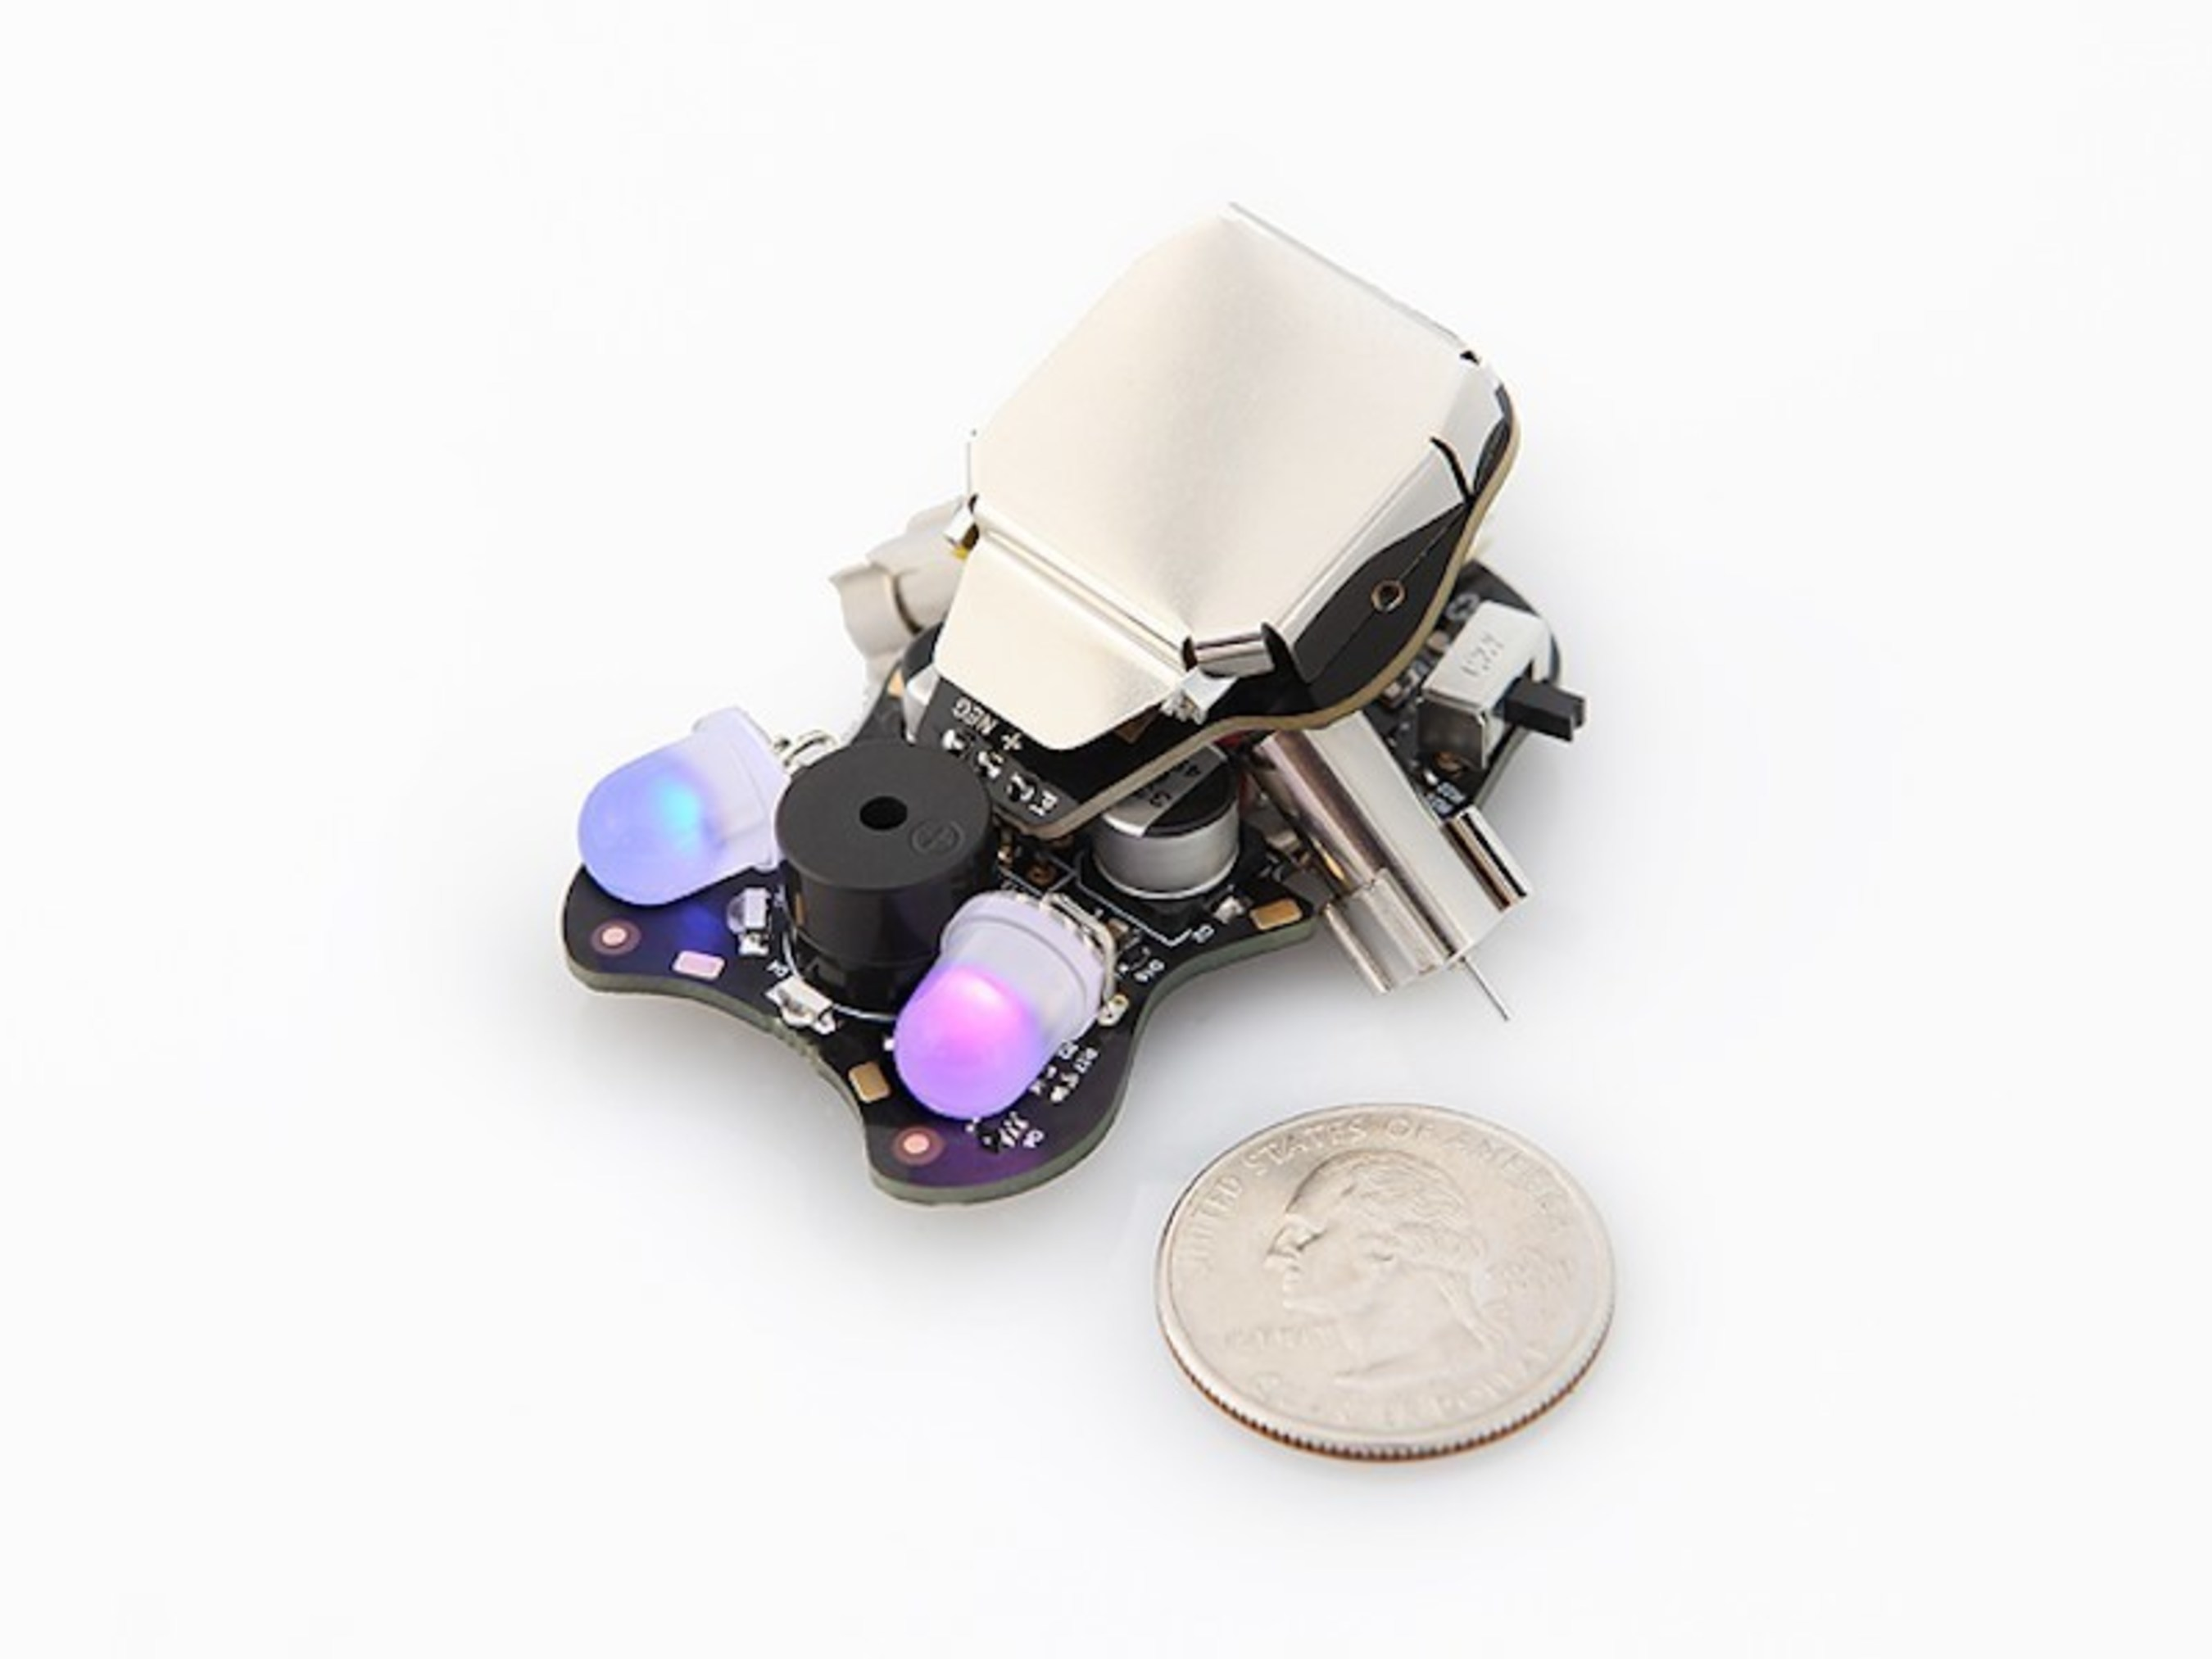 Wink STEM Robot From Plum Geek Helps Parents, Educators Introduce Kids to Wide World of Programming